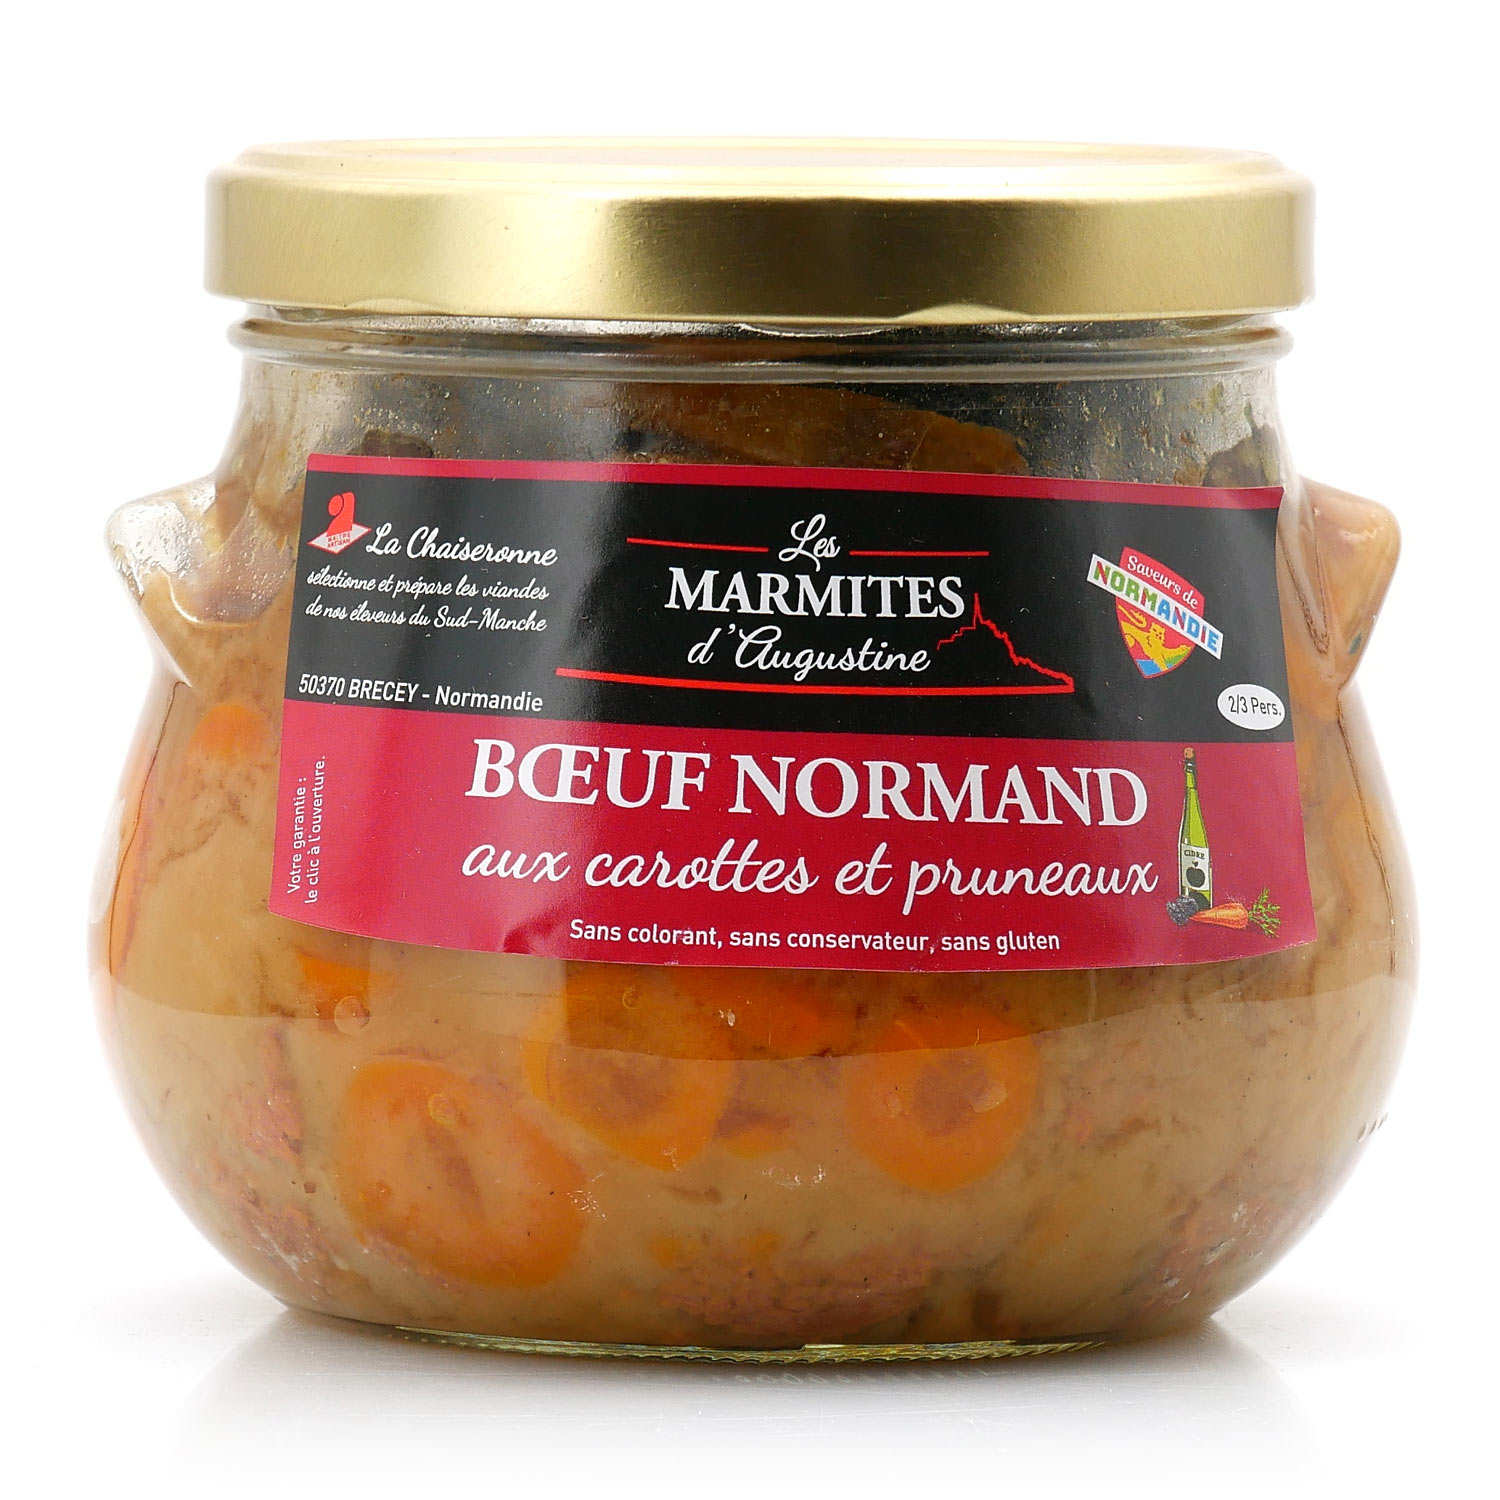 Normand Beef with Carrots and Prunes